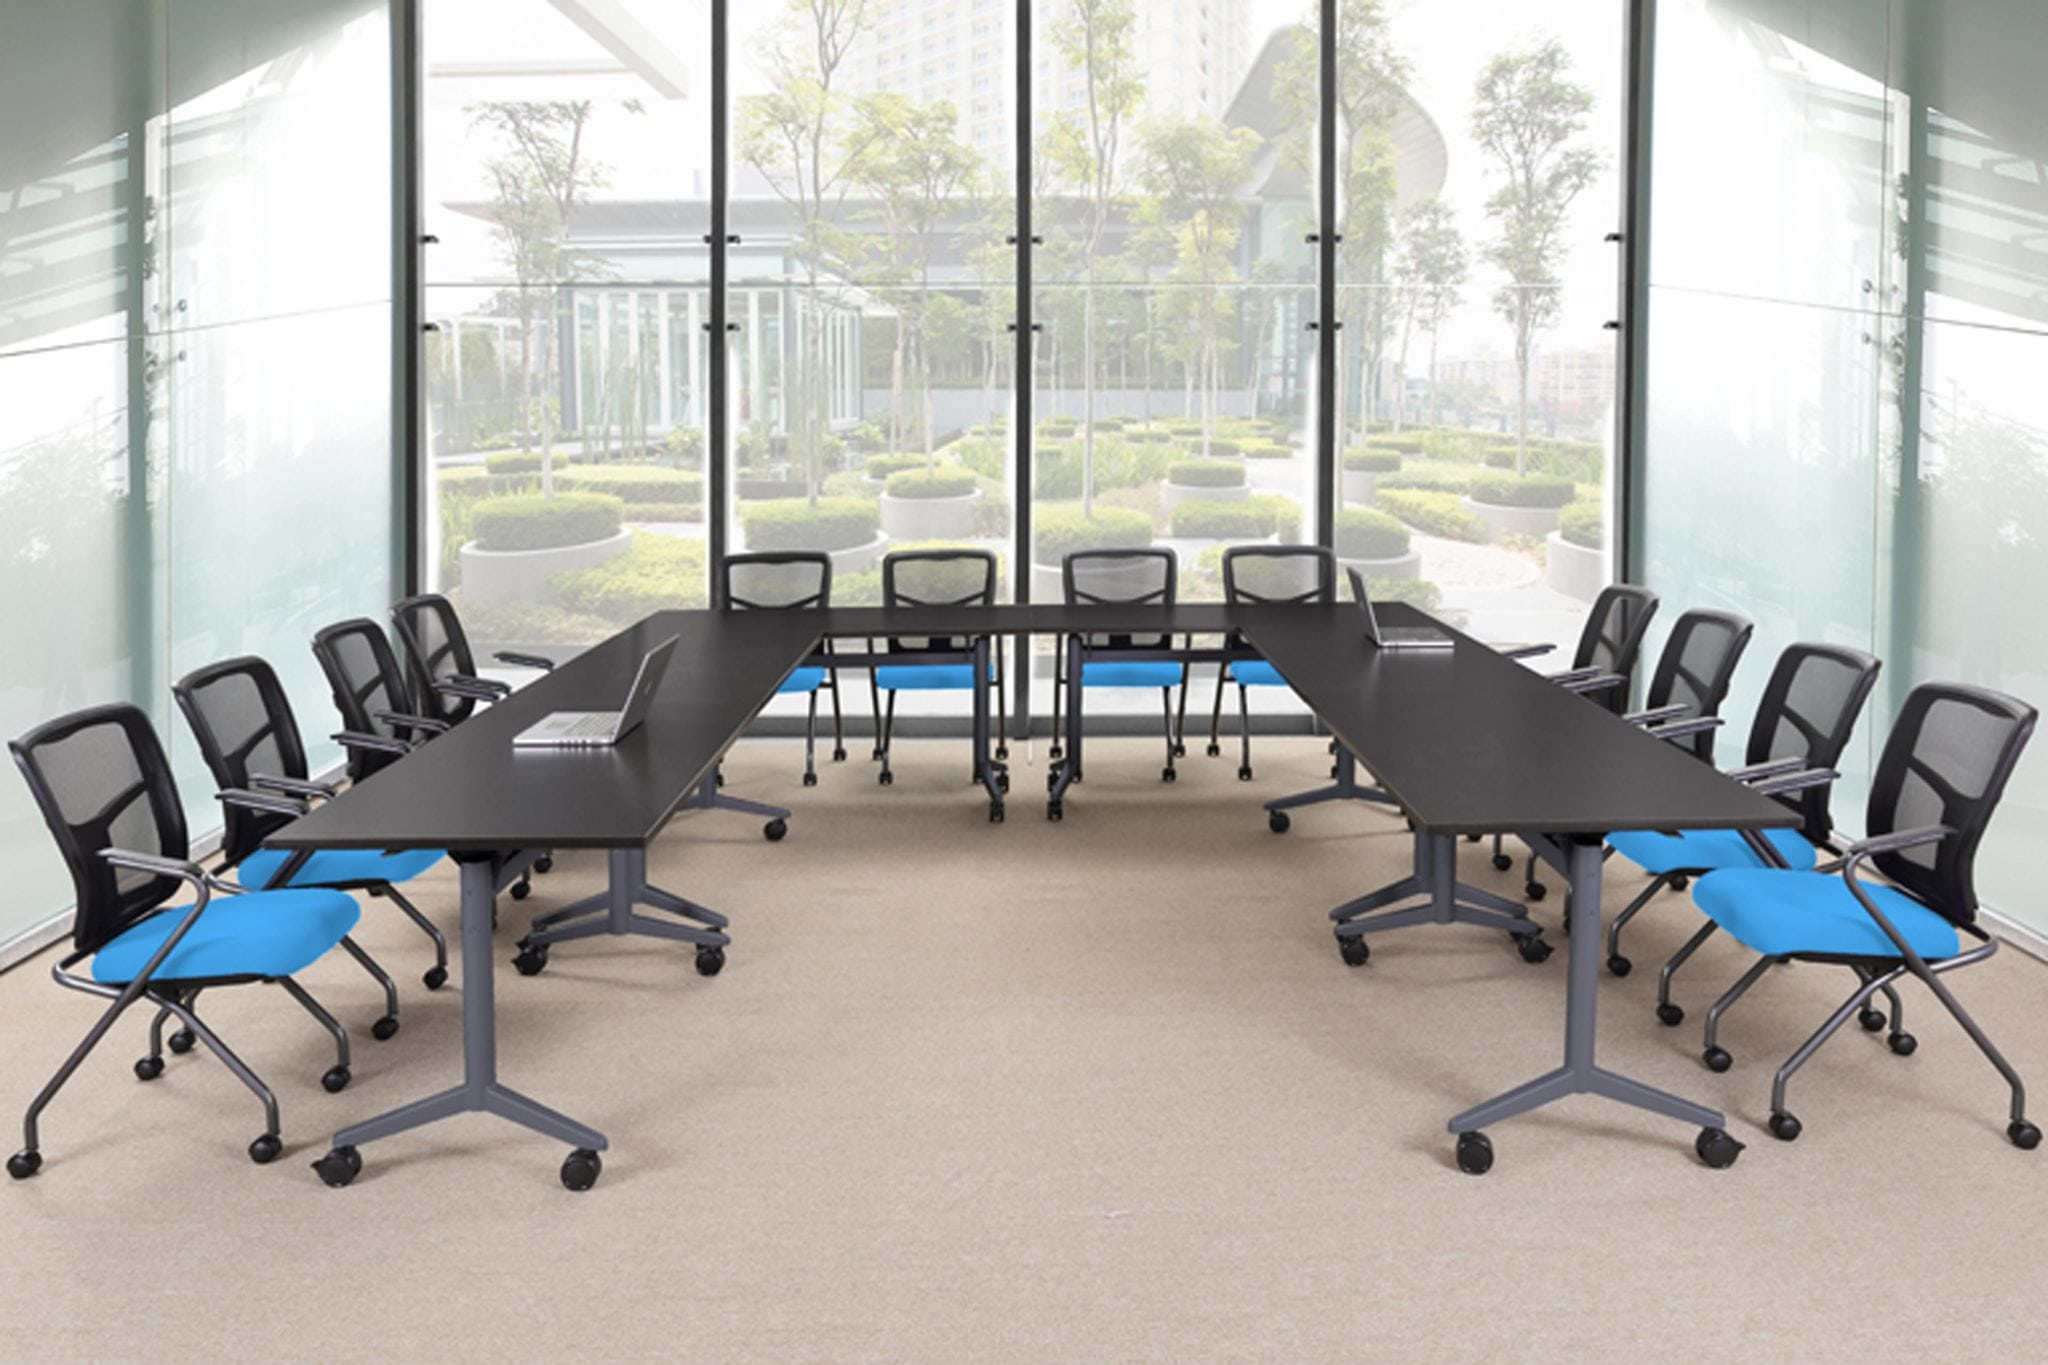 Fiptop Tables - Ideal for classroom, meeting, and institutional applications, these heavy duty flip top tables provide flexibility and convenience at an outstanding price.